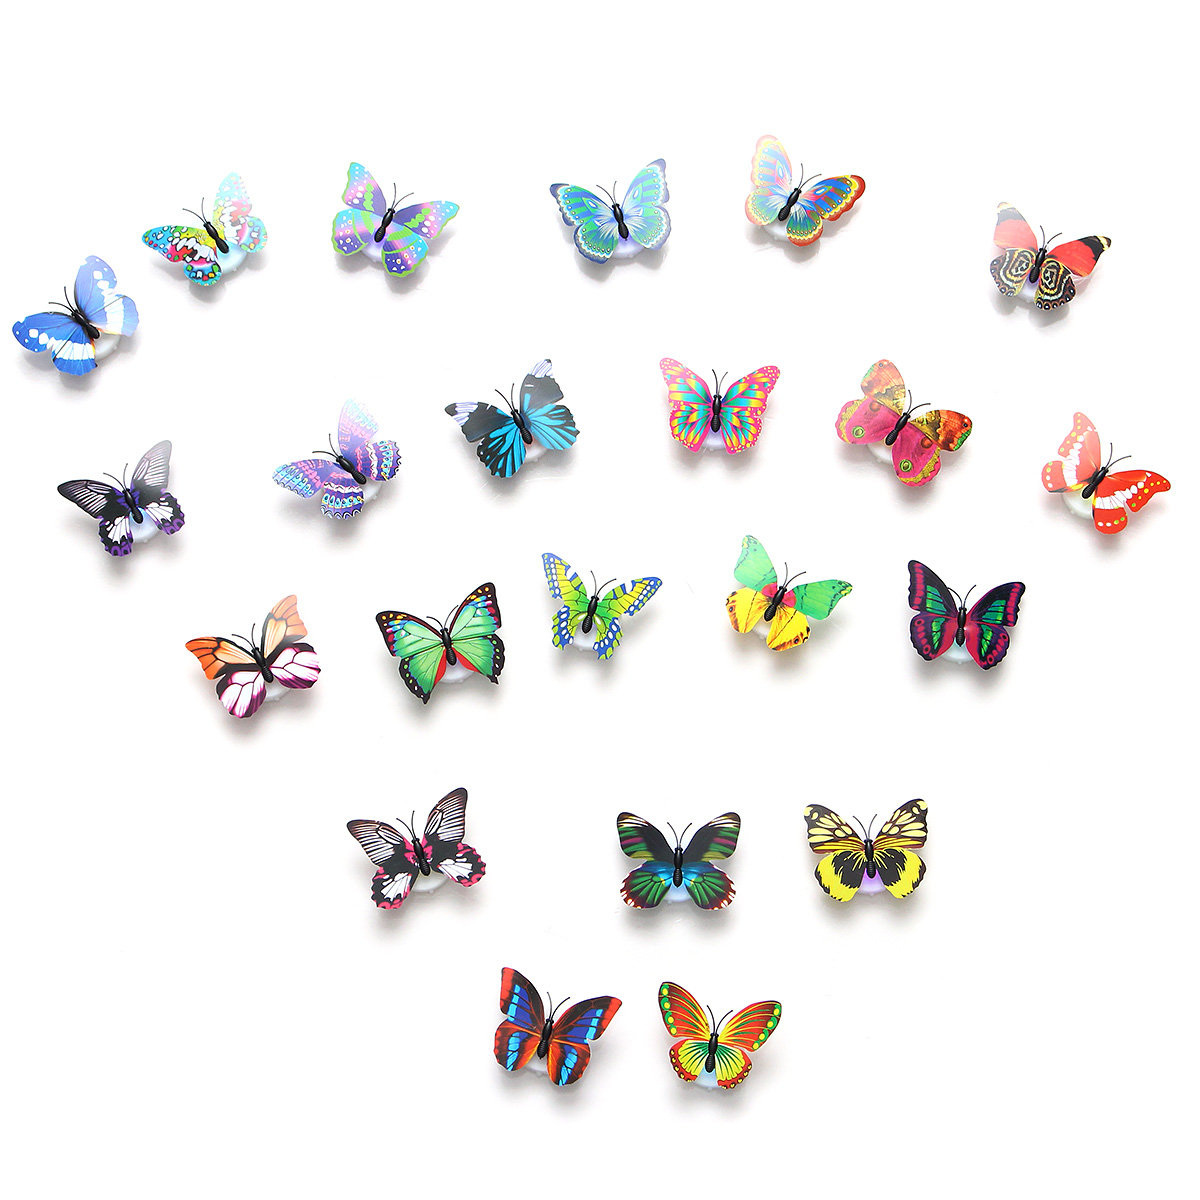 Most Popular 2Pcs Led Glowing 3D Butterfly Night Light Sticker Art Design Mural Pertaining To 3 Piece Capri Butterfly Wall Decor Sets (Gallery 9 of 20)